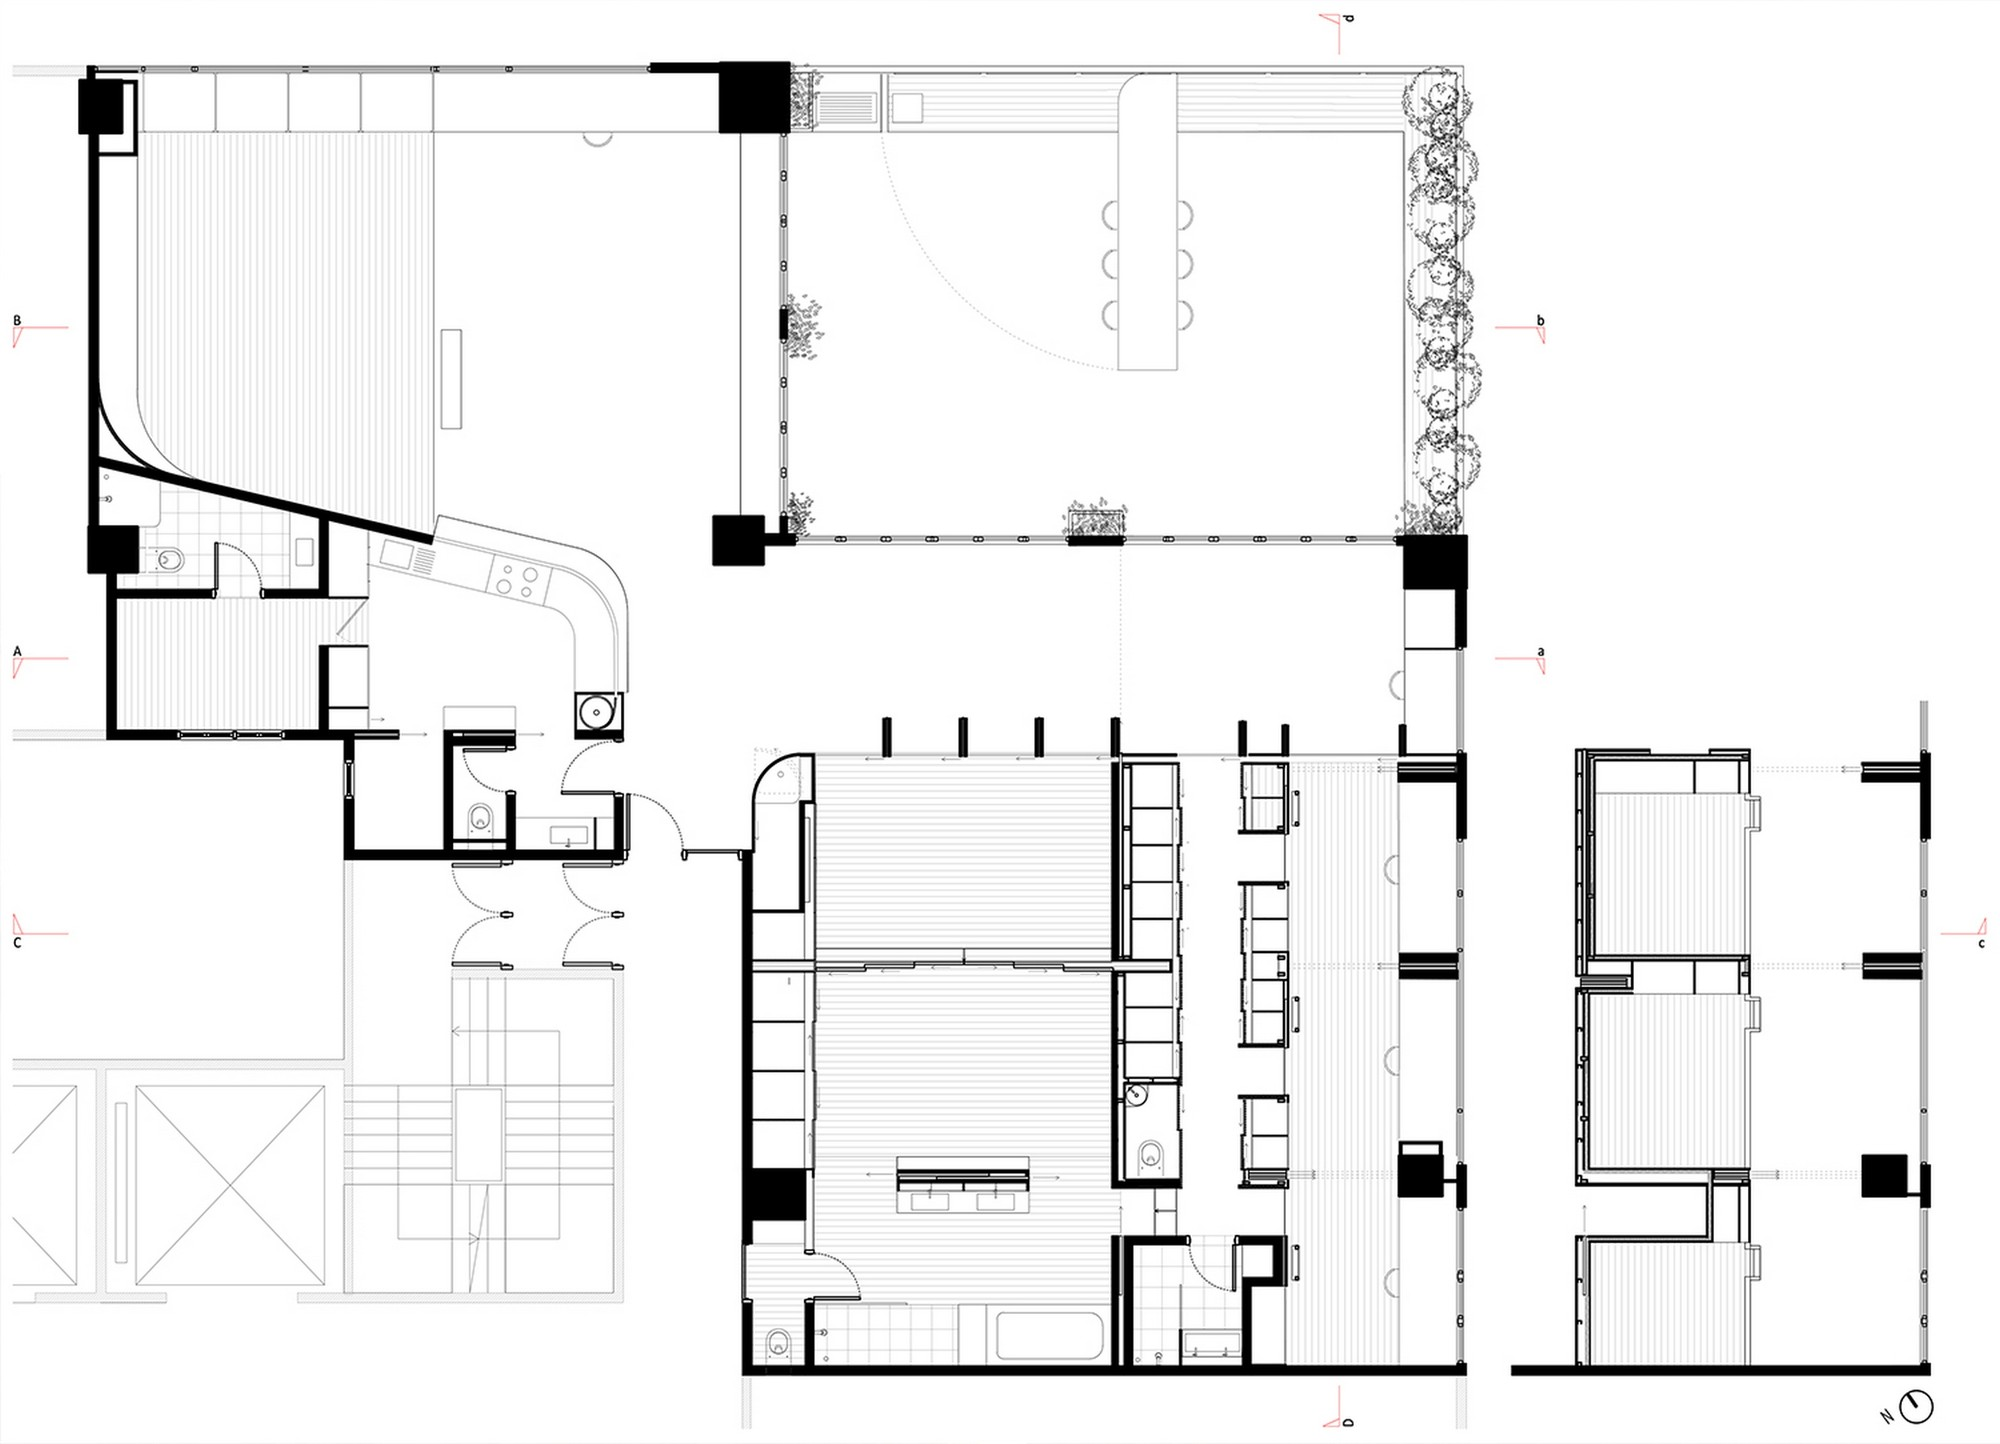 Hong Kong Apartment Floor Plan Gallery Of Wing Loft Laboratory For Explorative